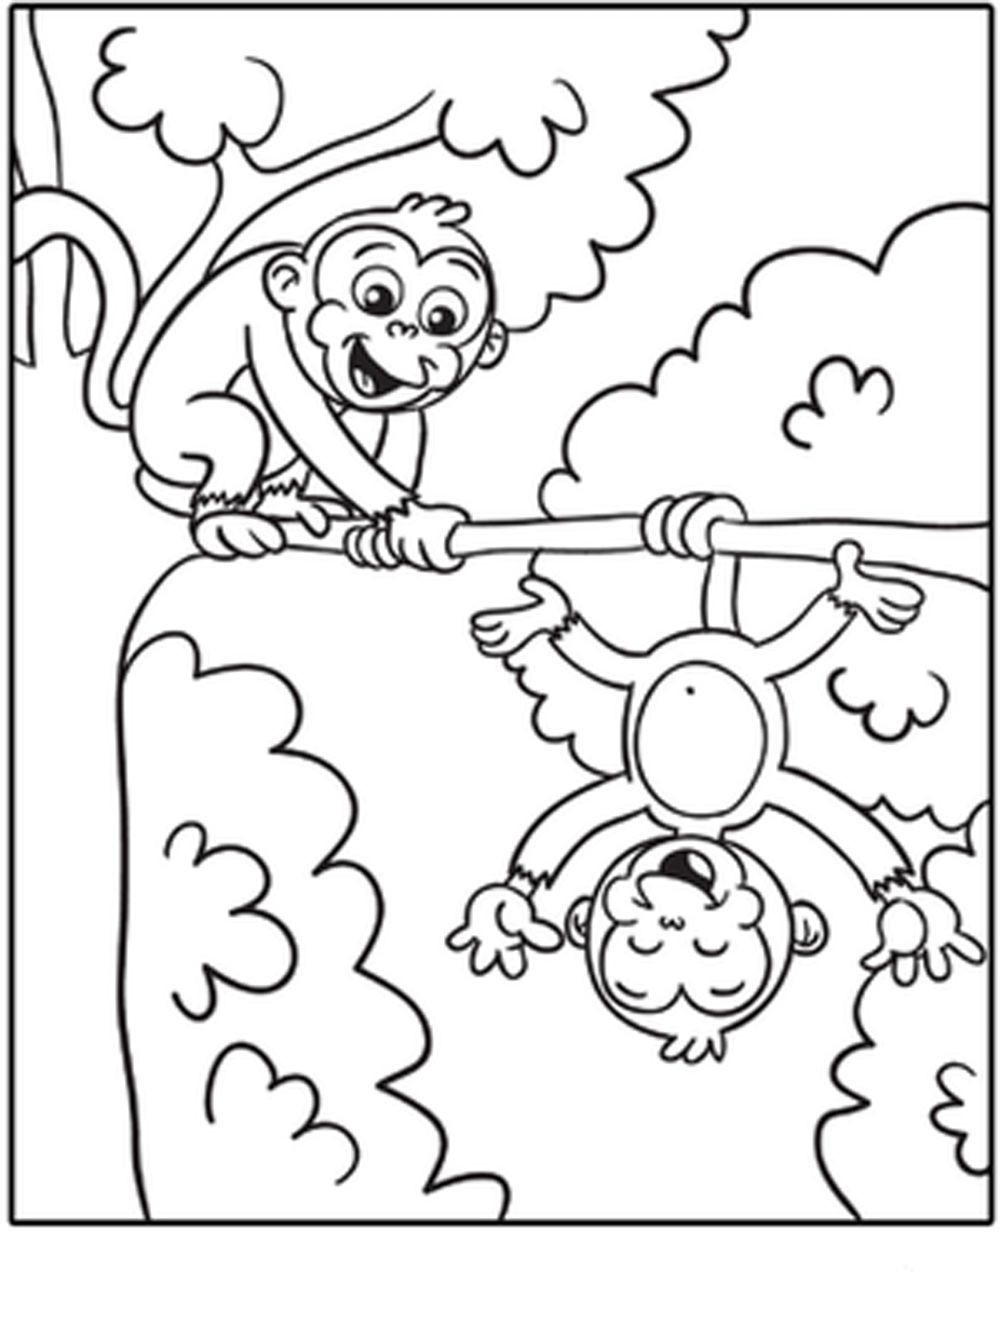 Best ideas about Monkey Printable Coloring Pages . Save or Pin Monkey Coloring Book Page Coloring Home Now.